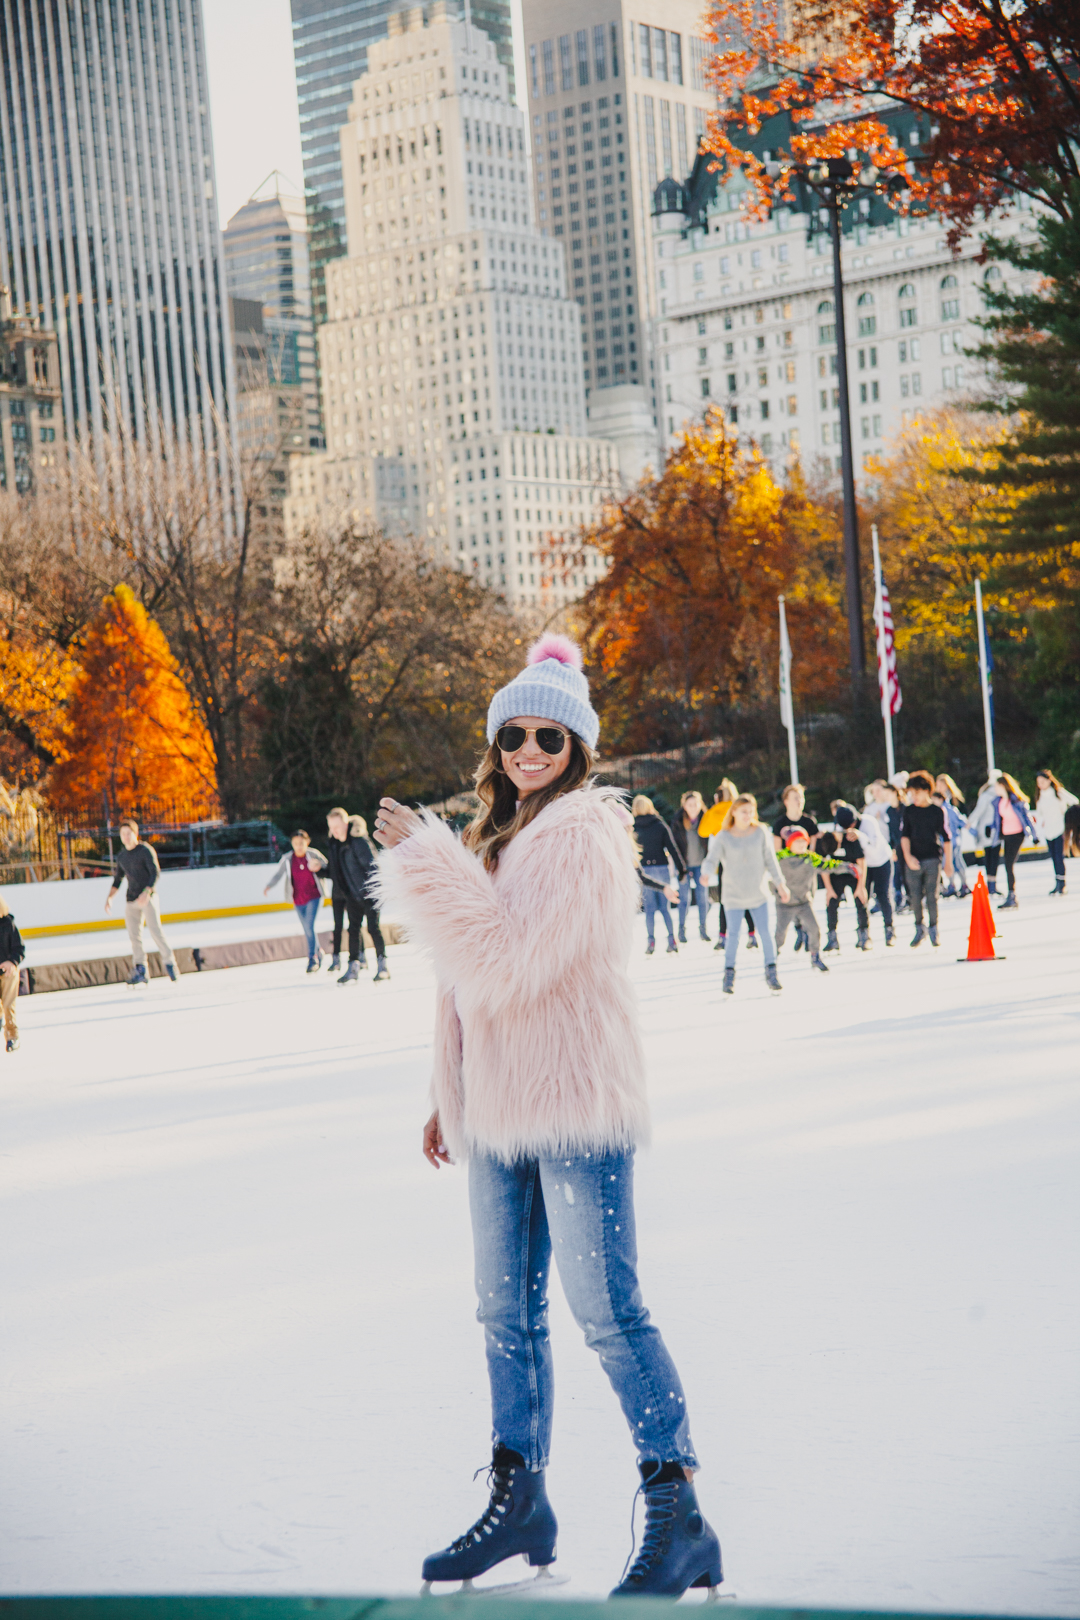 allbuenothings-new-york-ice-skating-rink-blogger-ootd-central-park